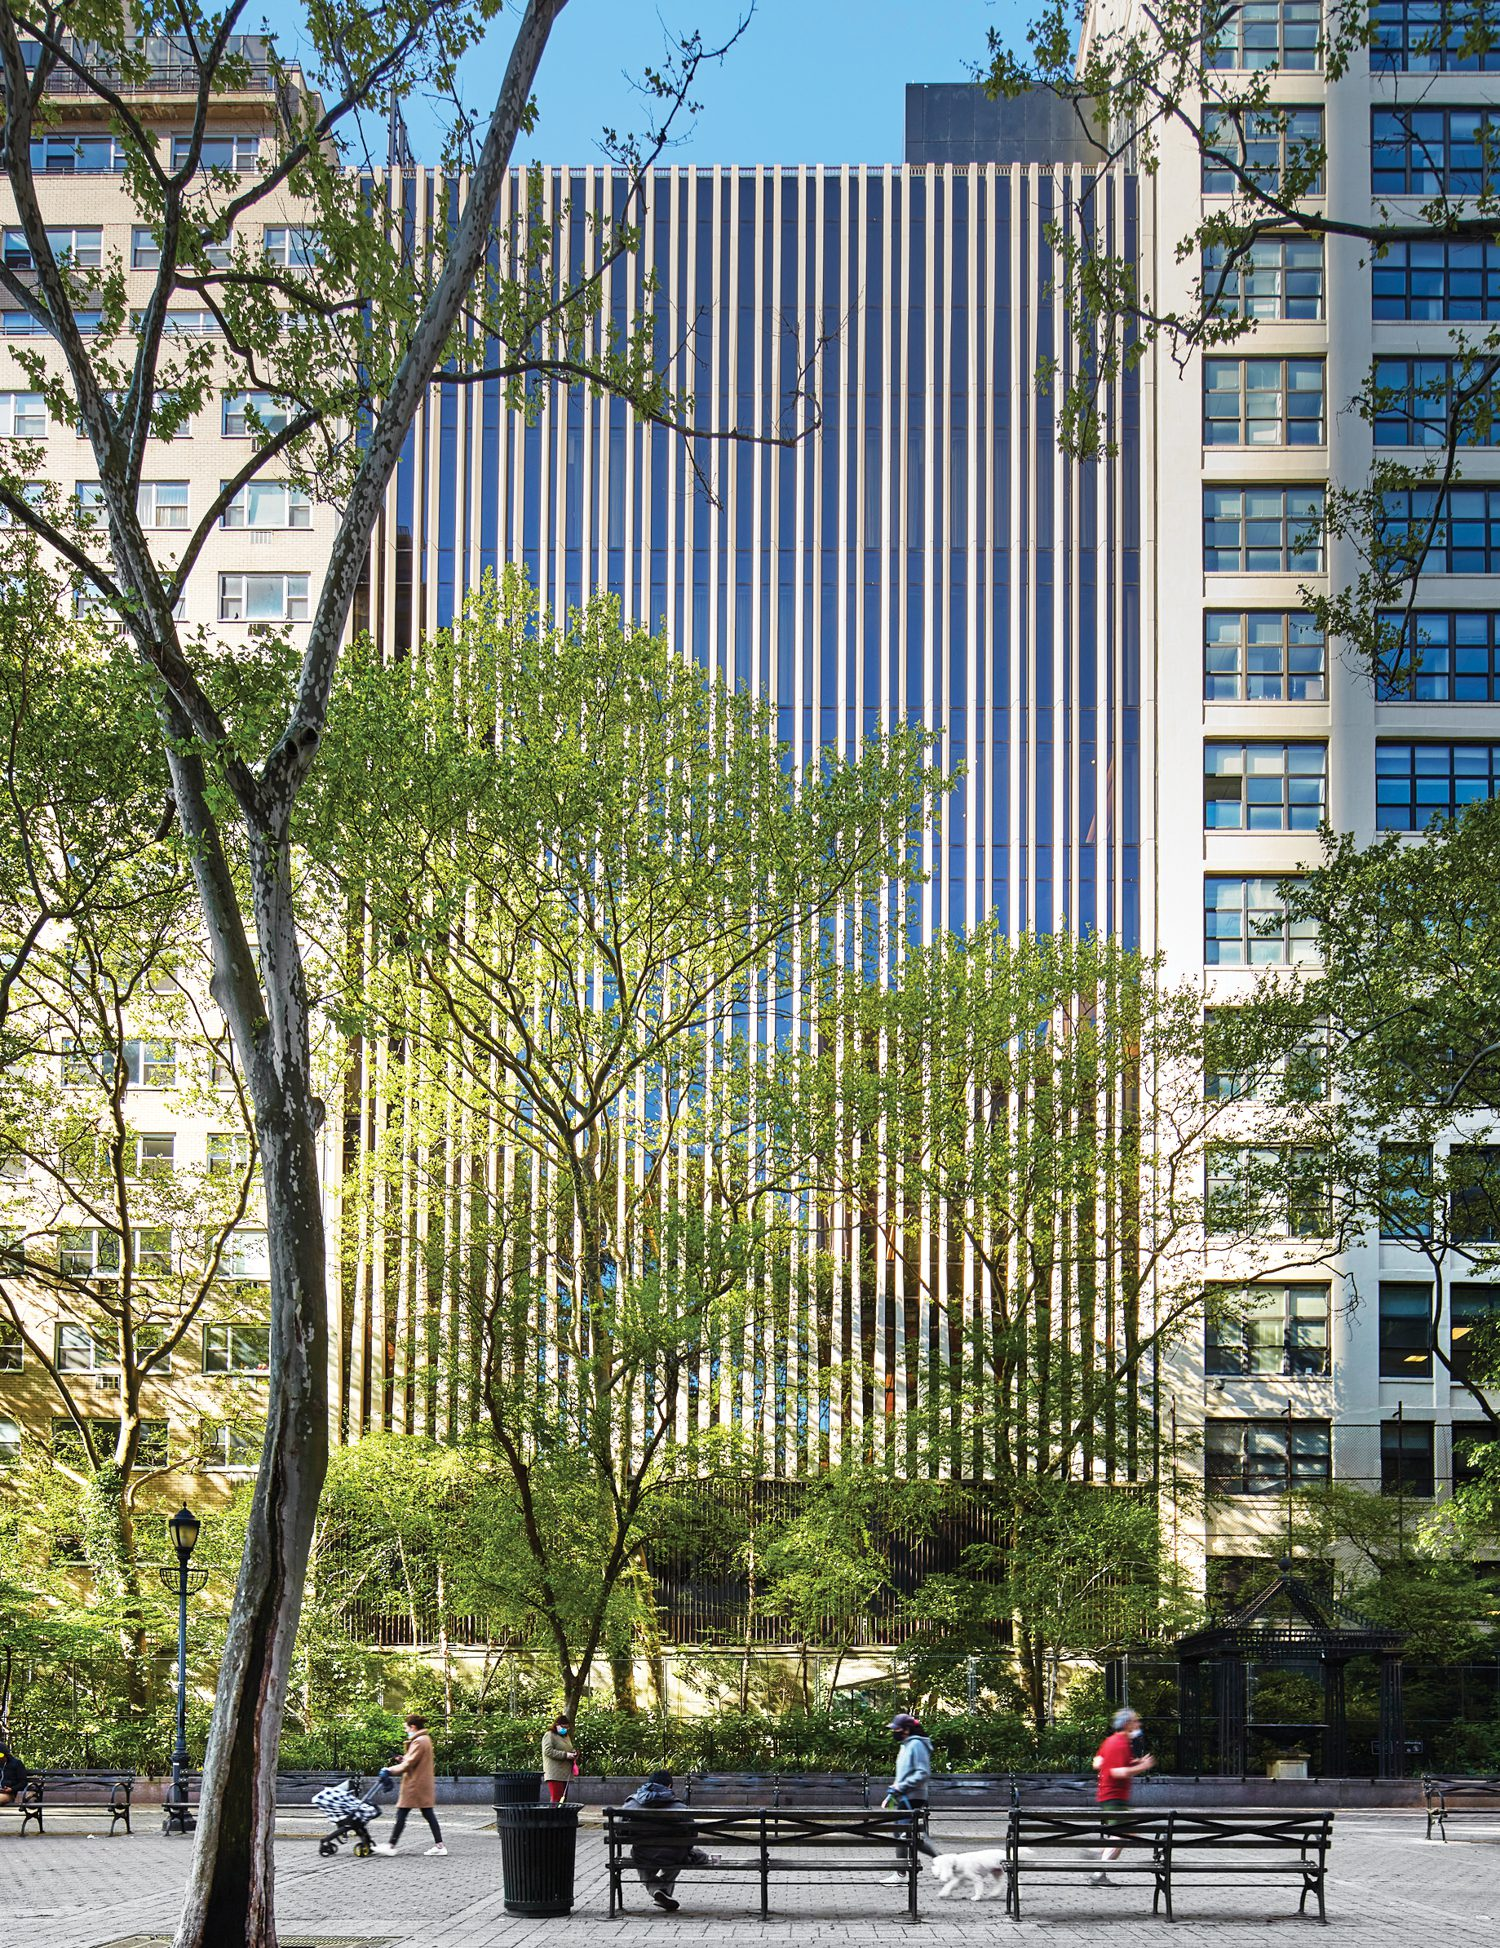 The Indiana limestone comes from quarries that supplied Rockefeller Center and the Empire State Building.